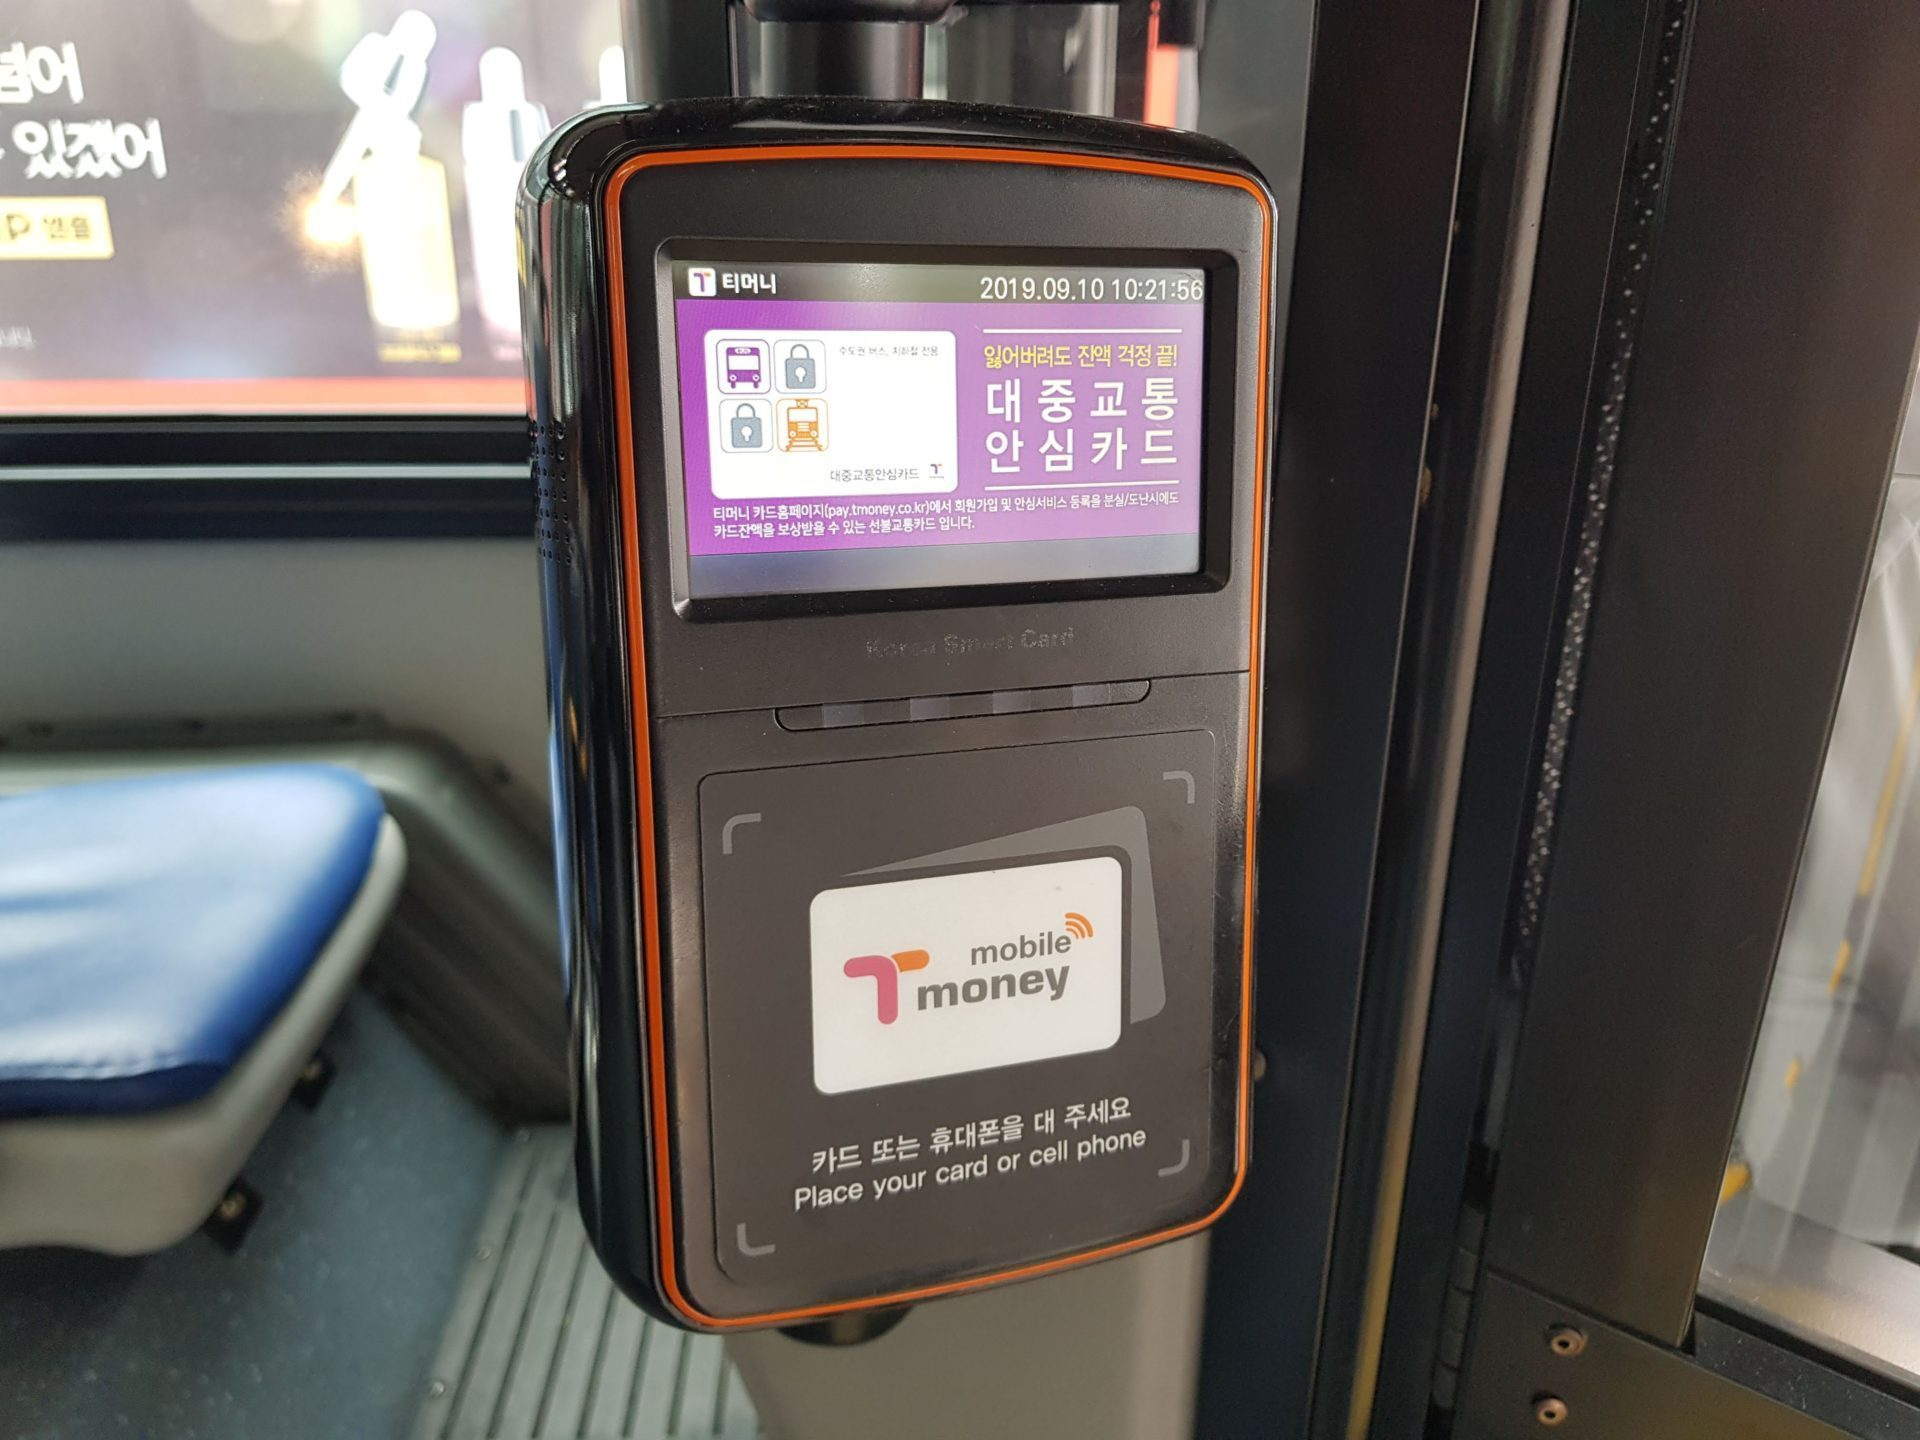 T Money Card on a bus in Korea